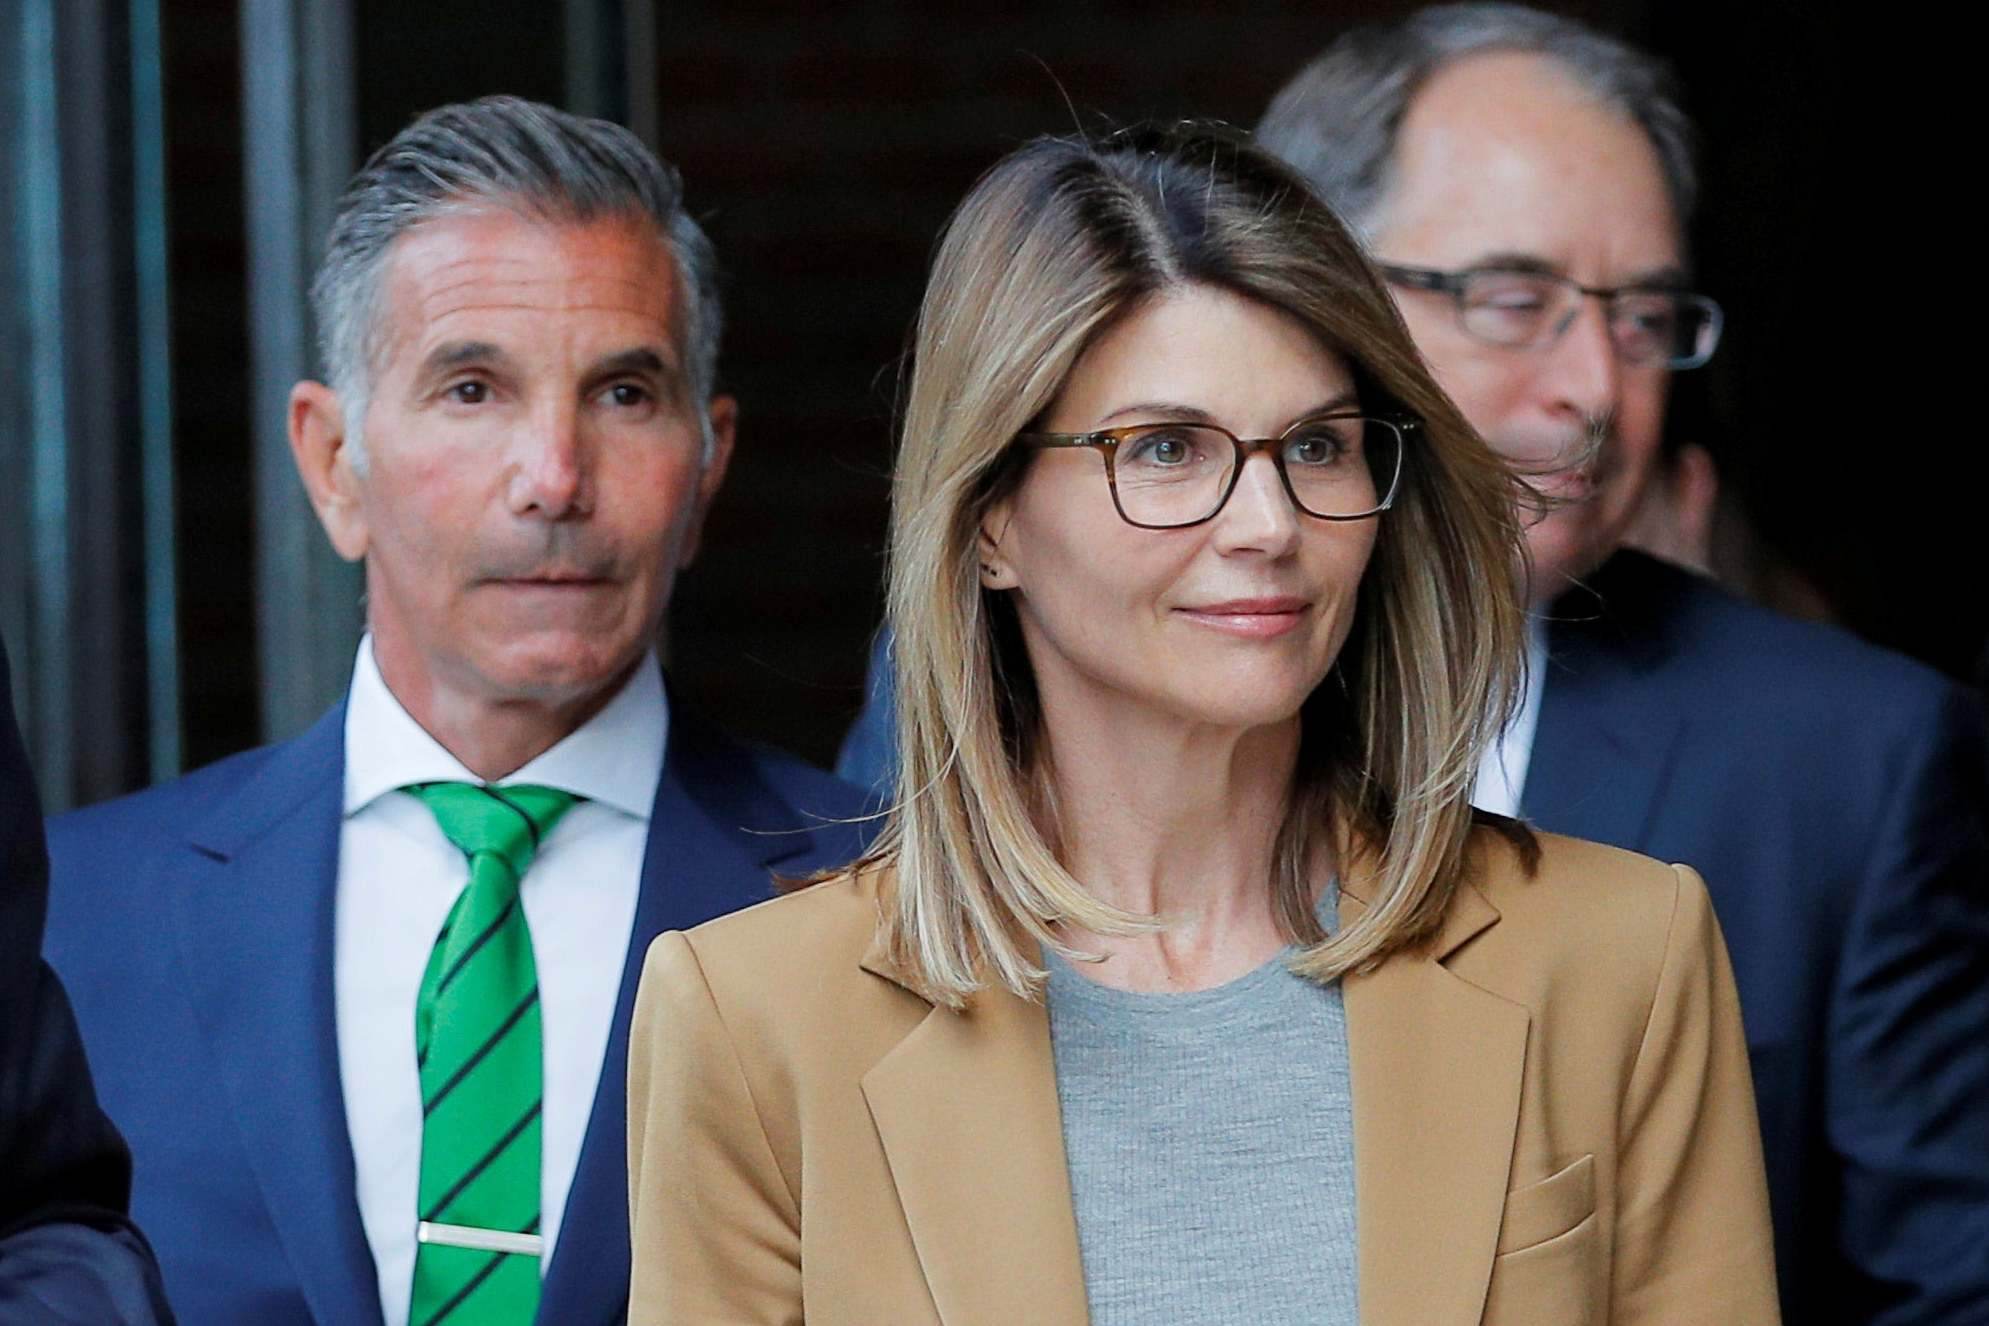 Lori Loughlin launched after serving penal advanced term for school bribes rip-off